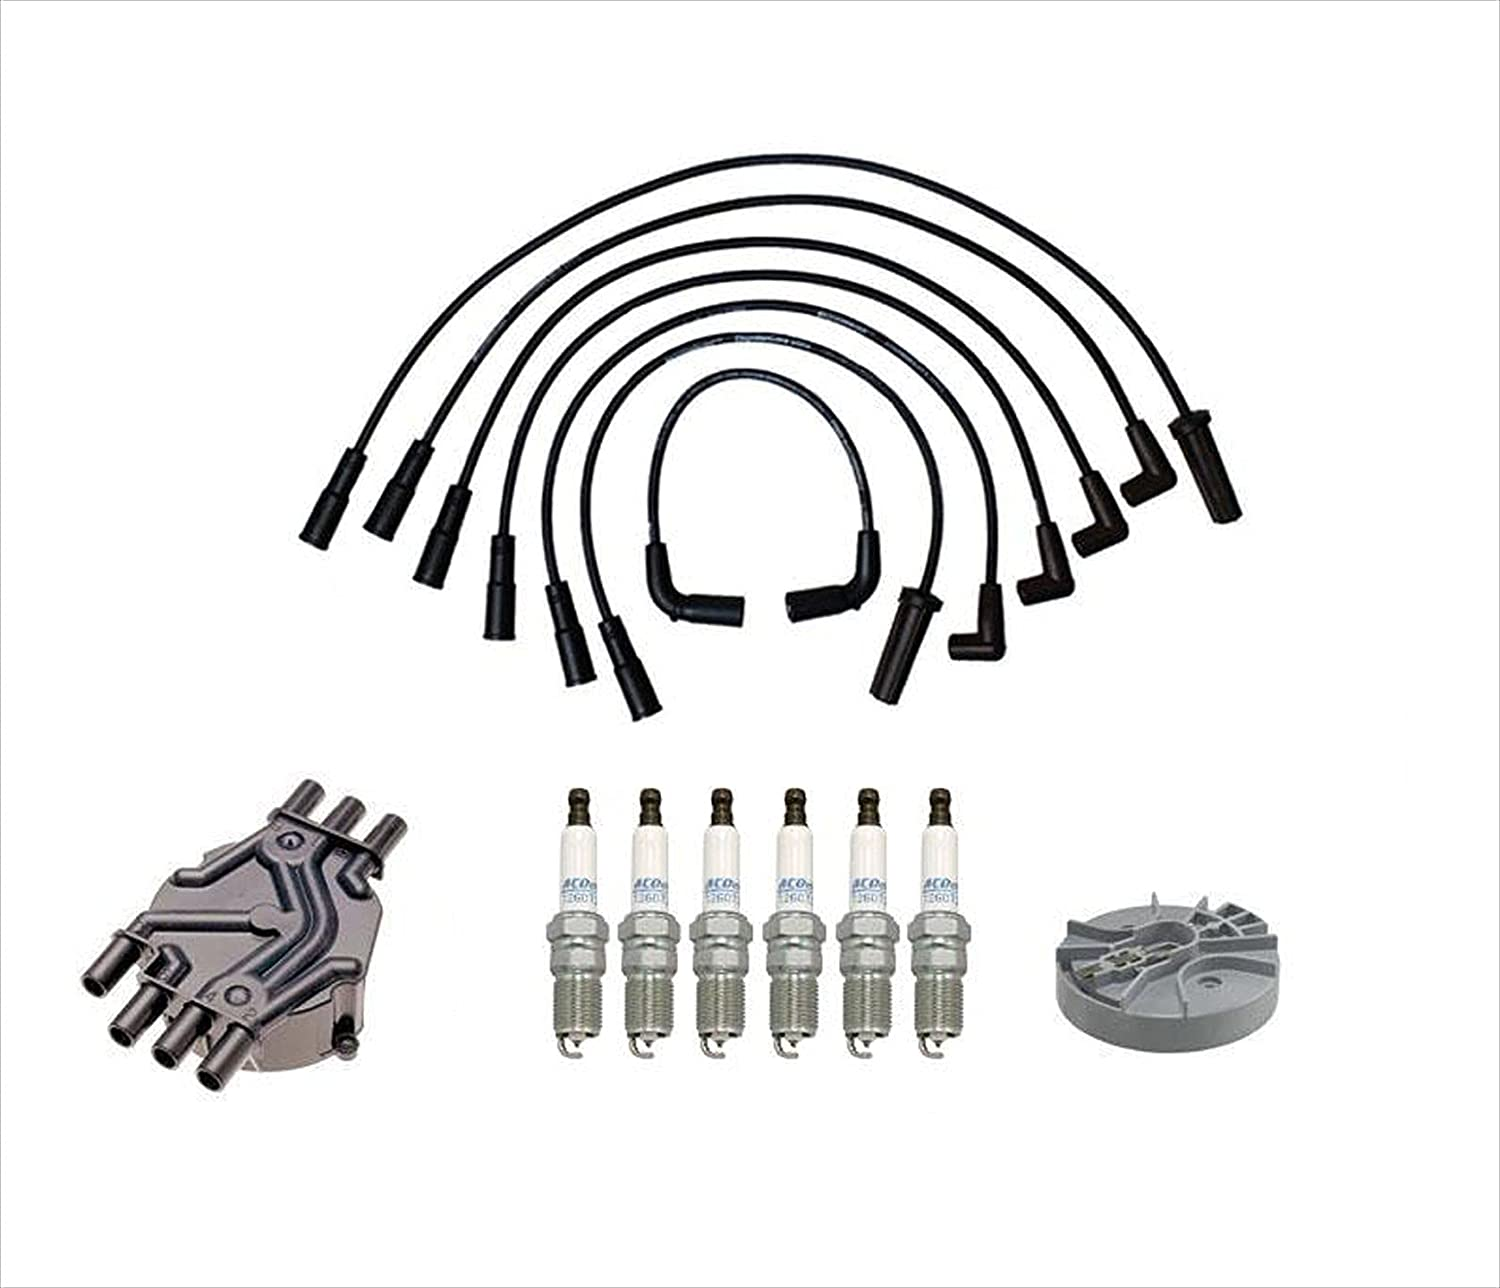 Ignition Wires Spark Plugs Distribuitor Chevrolet GM Colorado Springs Mall Rotor SEAL limited product Cap